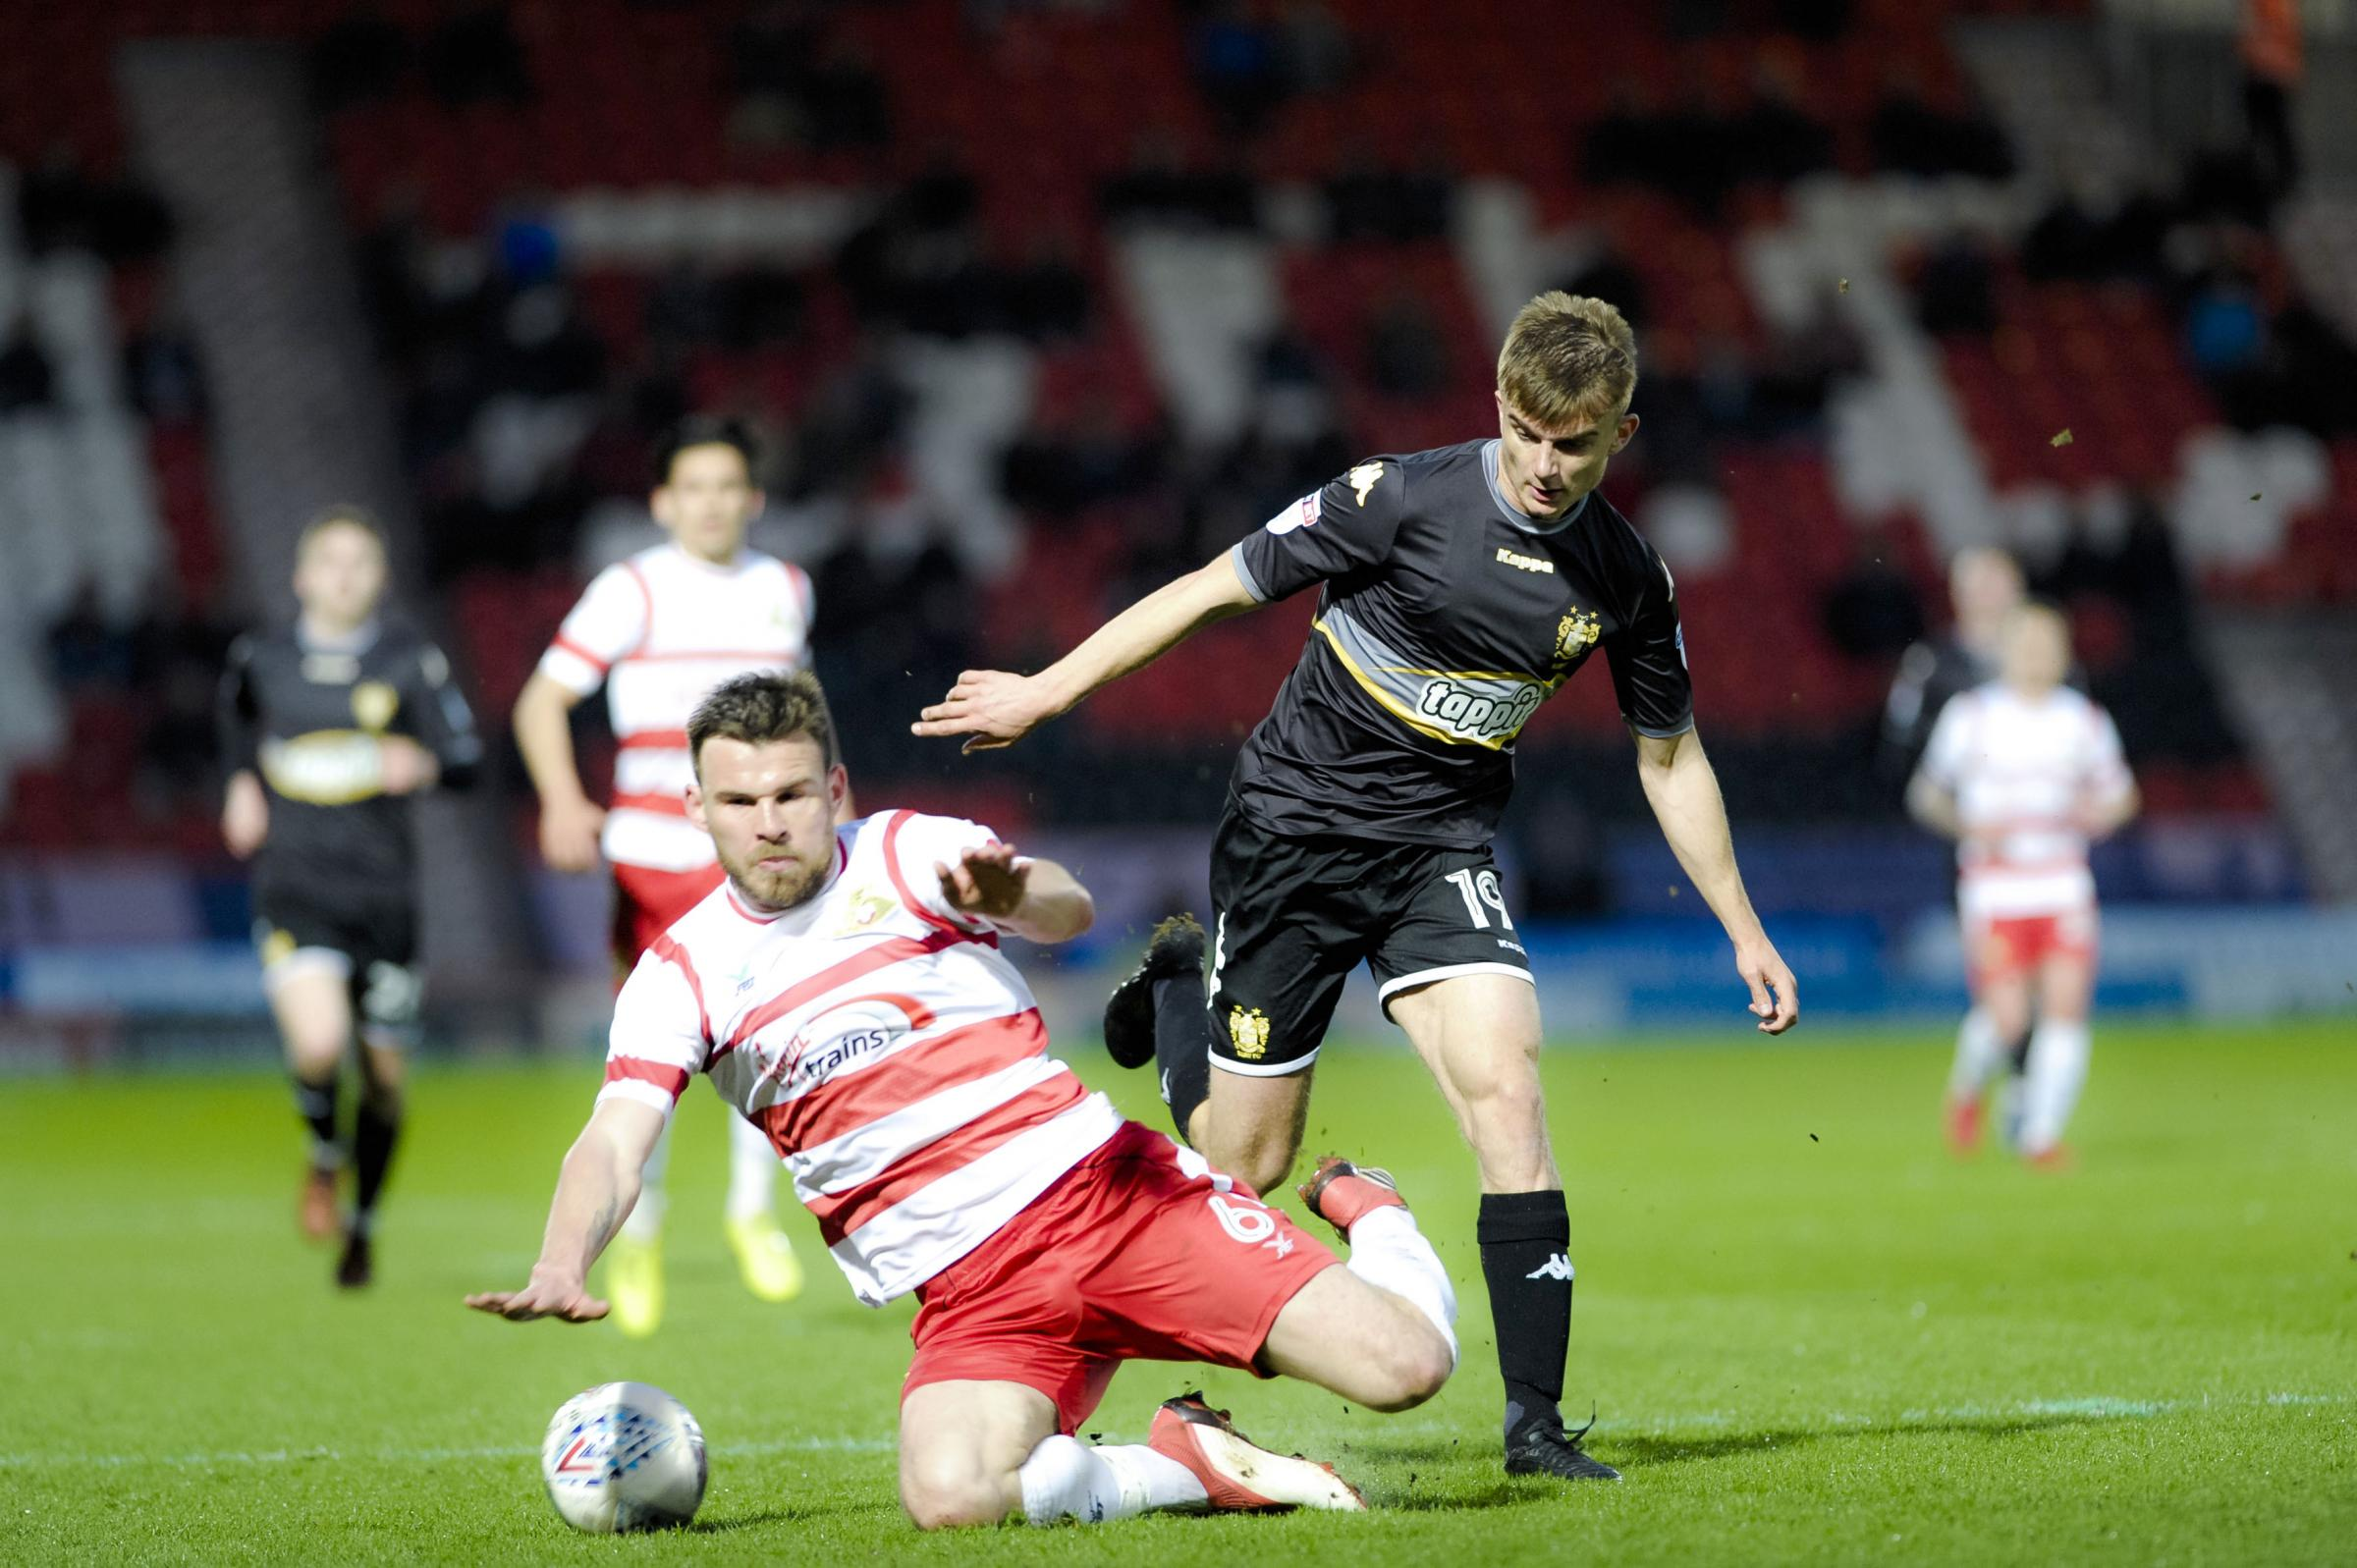 GOING FOR IT: Bury's George Miller challenges Doncaster defender Andrew Butler during last night's match